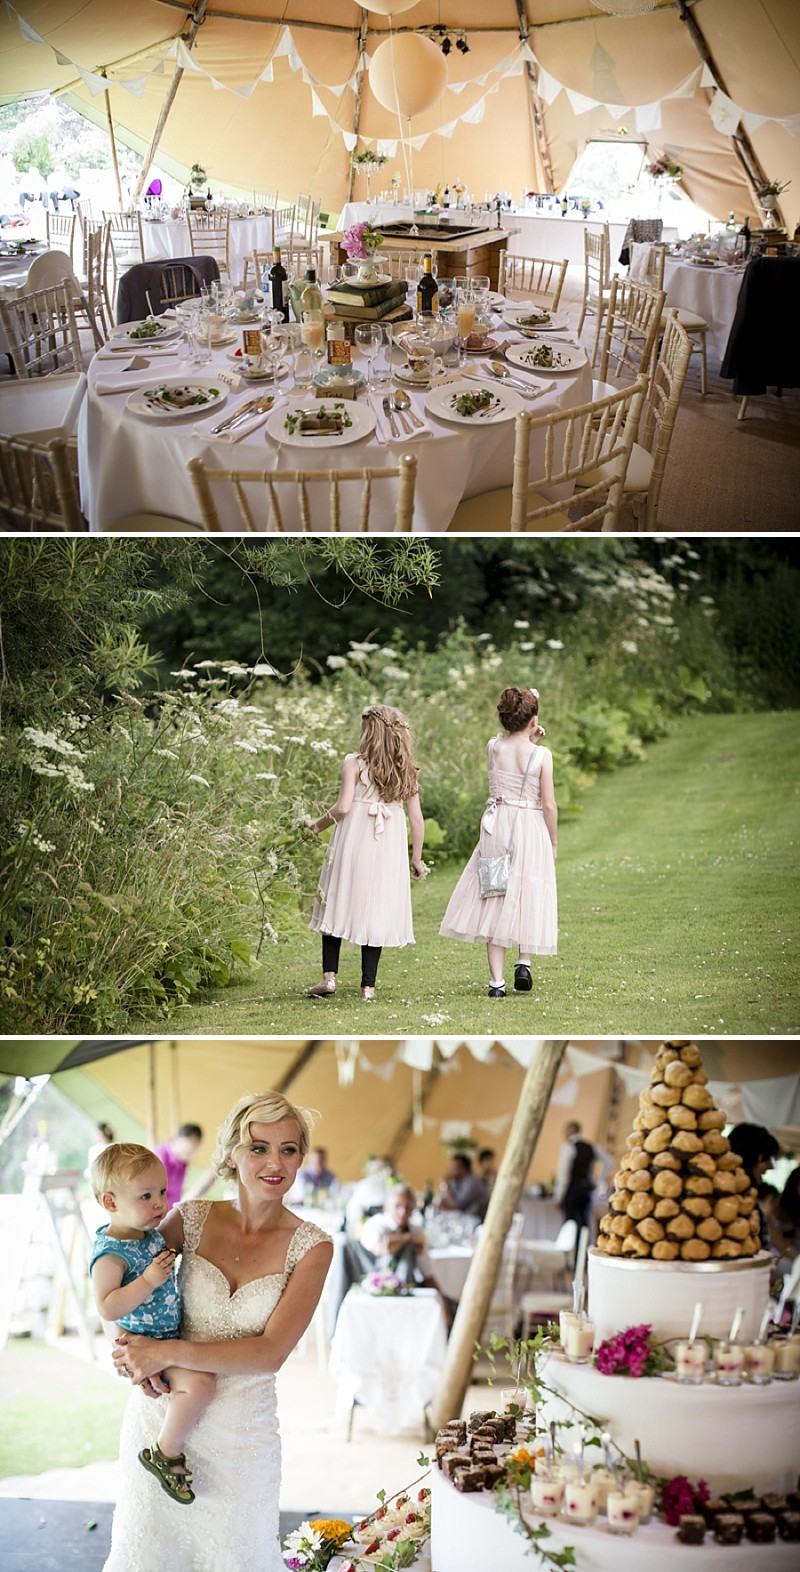 A Vintage Inspired Wedding At Penpont House Brecon With Bride In Lace Fishtail Gown By Mori Lee And Groom In Navy Suit From Suit Supply With Tweed Waistcoat And Images From Martin Ellard At My Big Day Photos_0013